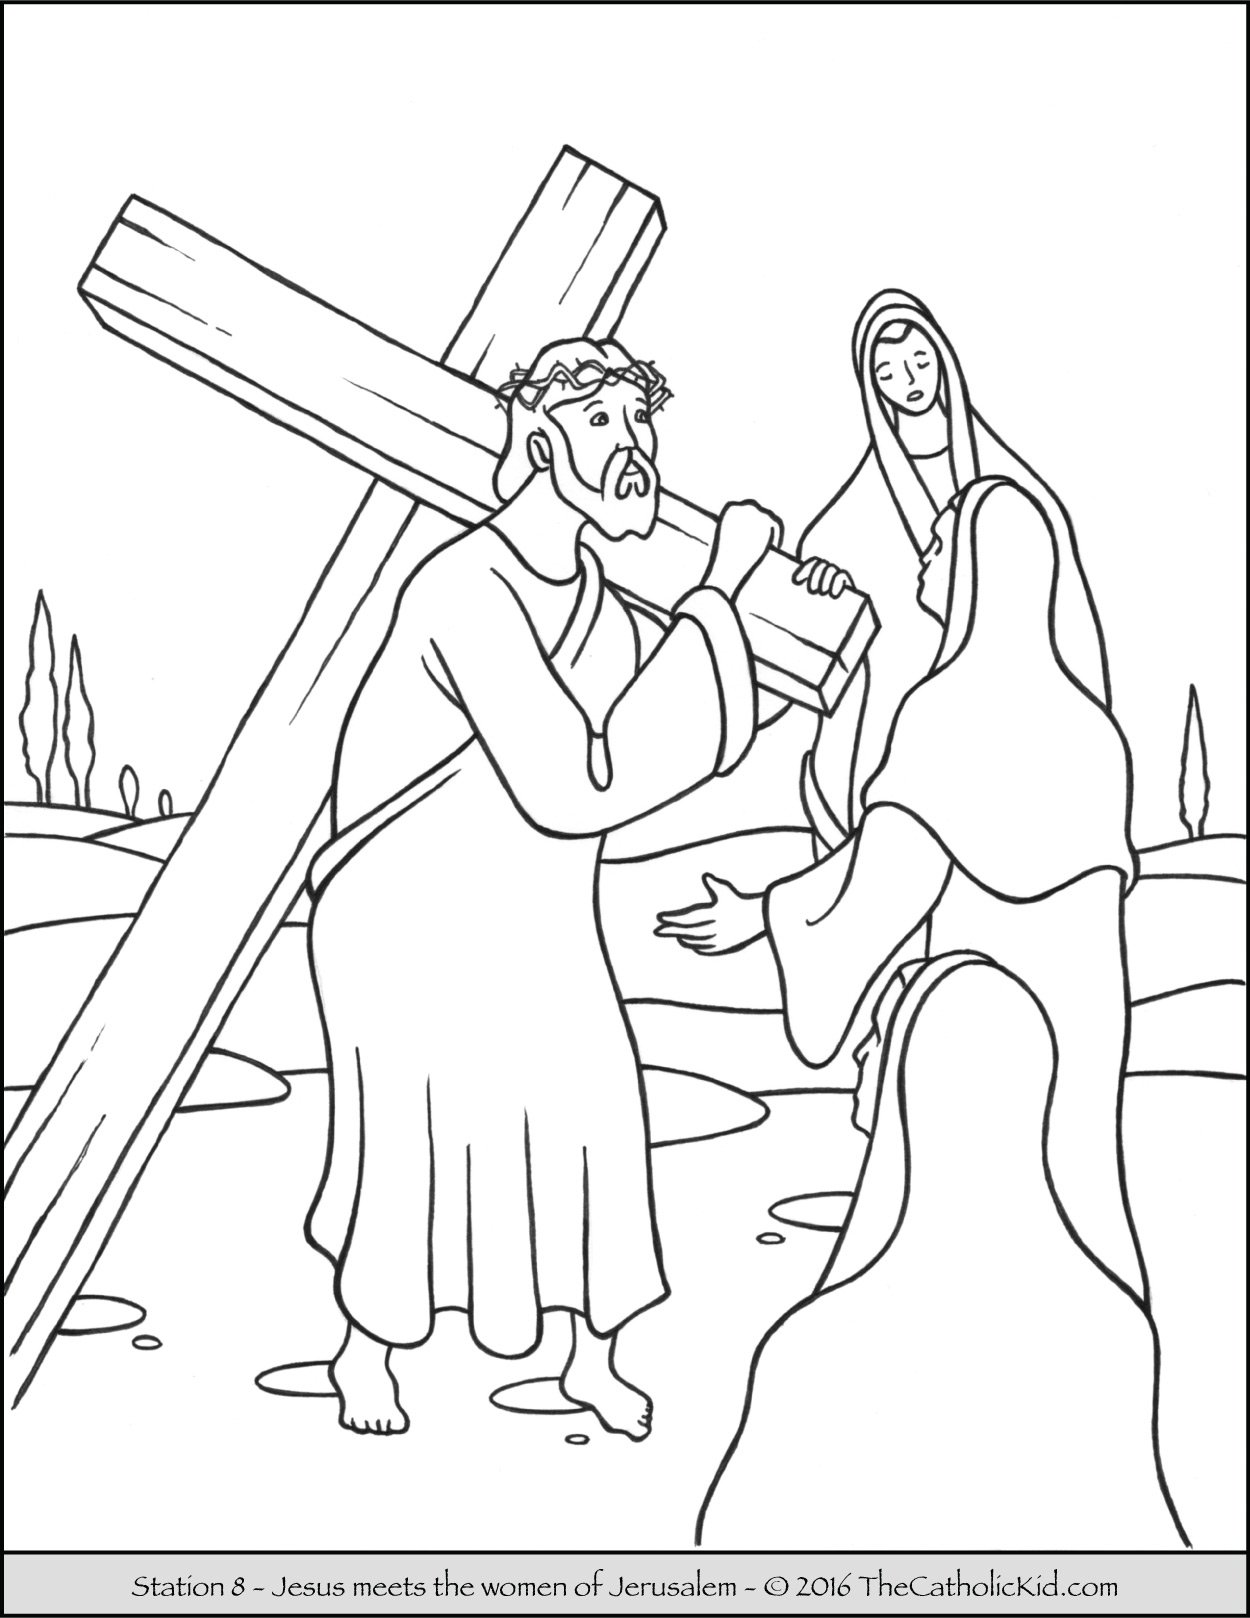 Stations Of The Cross Coloring Pages Gorgeous Stations Of The Cross Coloring Pages  The Catholic Kid Design Inspiration